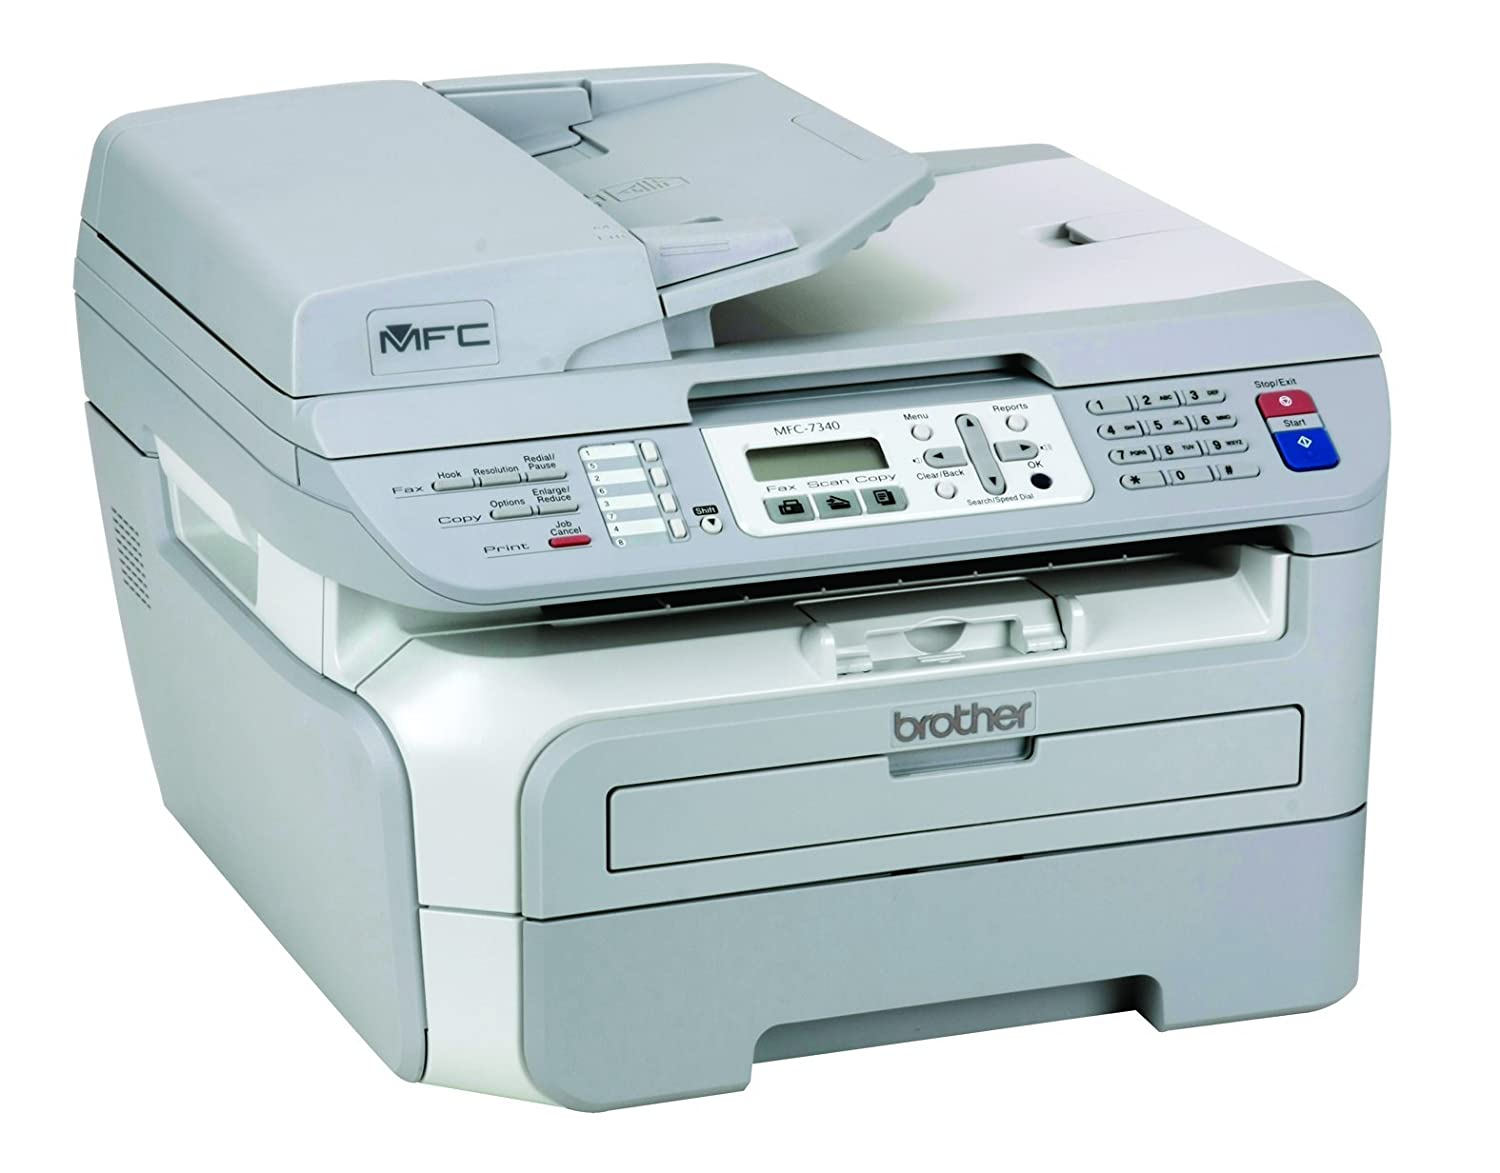 brother mfc 7340 manual pdf